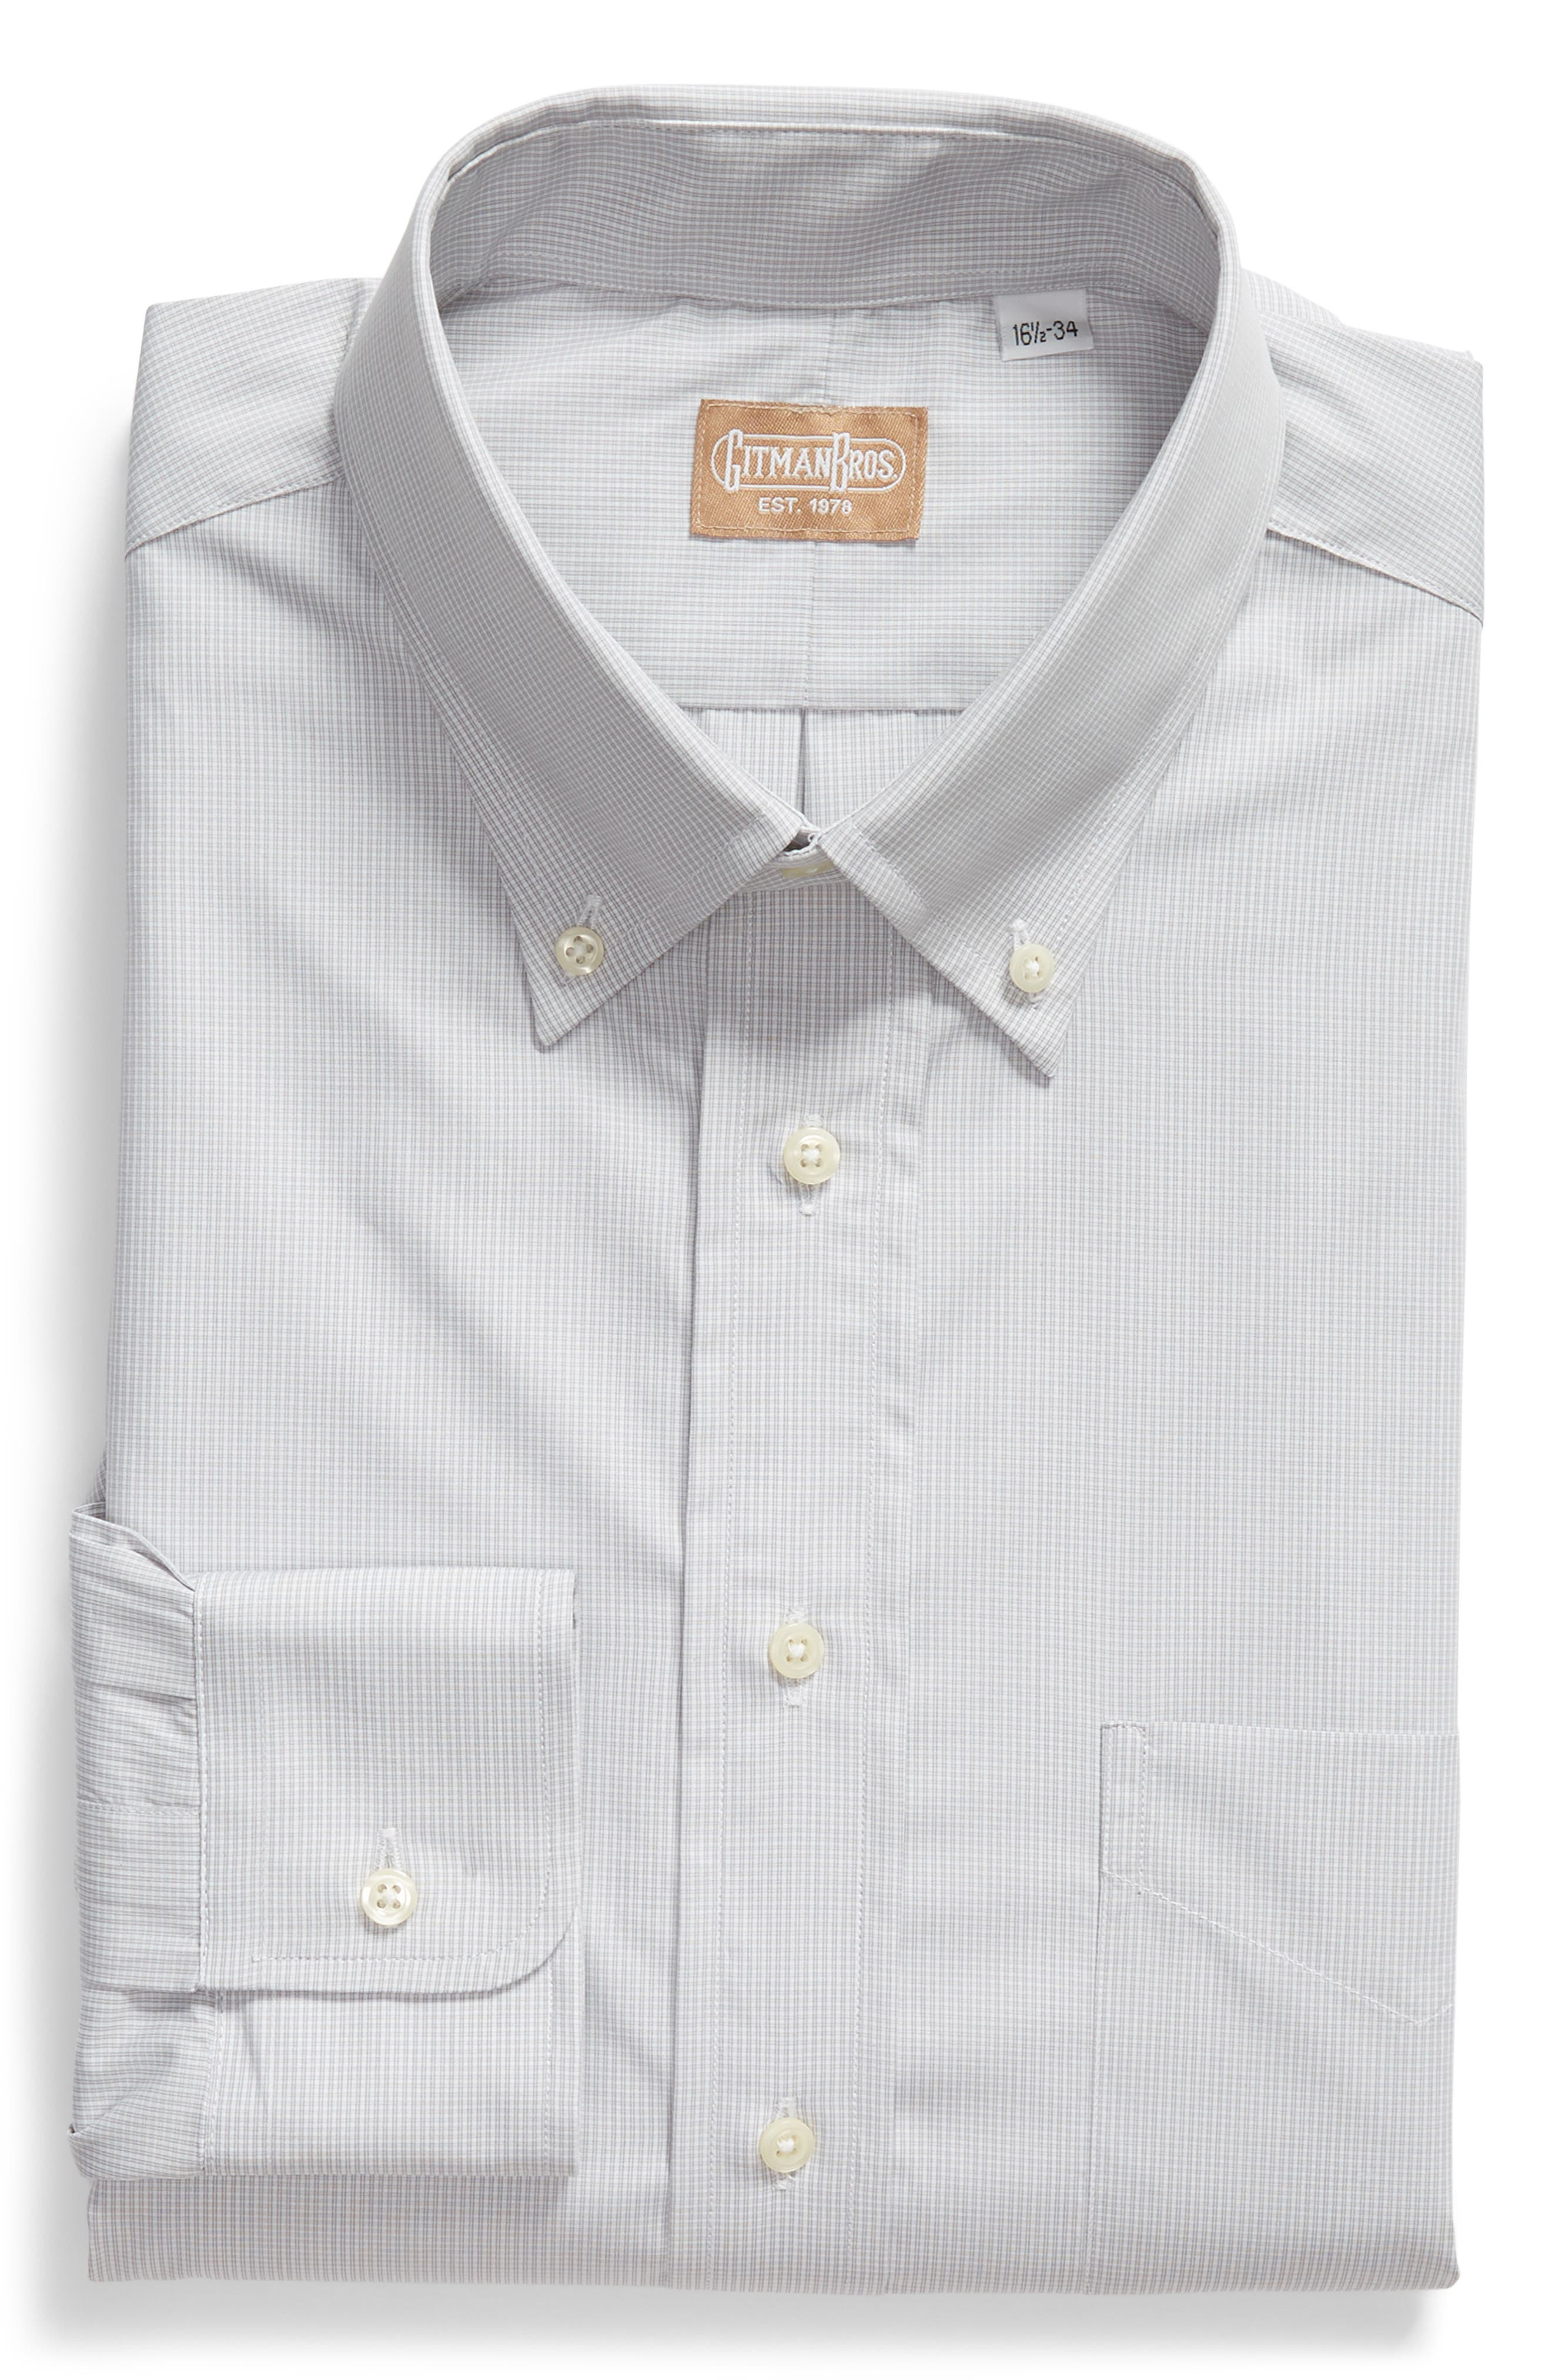 Tailored Fit Check Dress Shirt,                             Alternate thumbnail 5, color,                             Charcoal